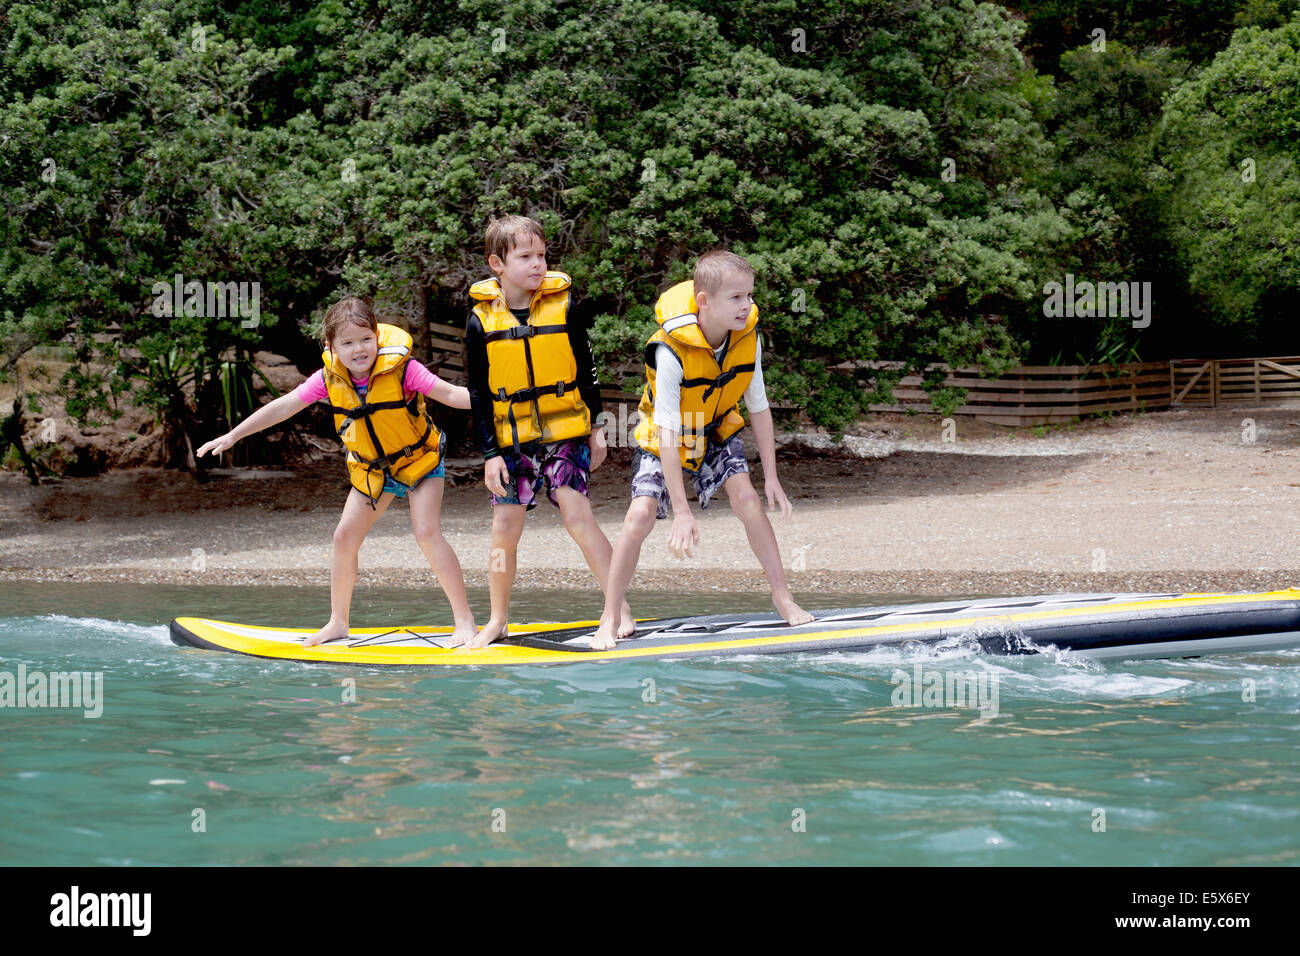 Brothers and sister standing on paddleboard at sea - Stock Image